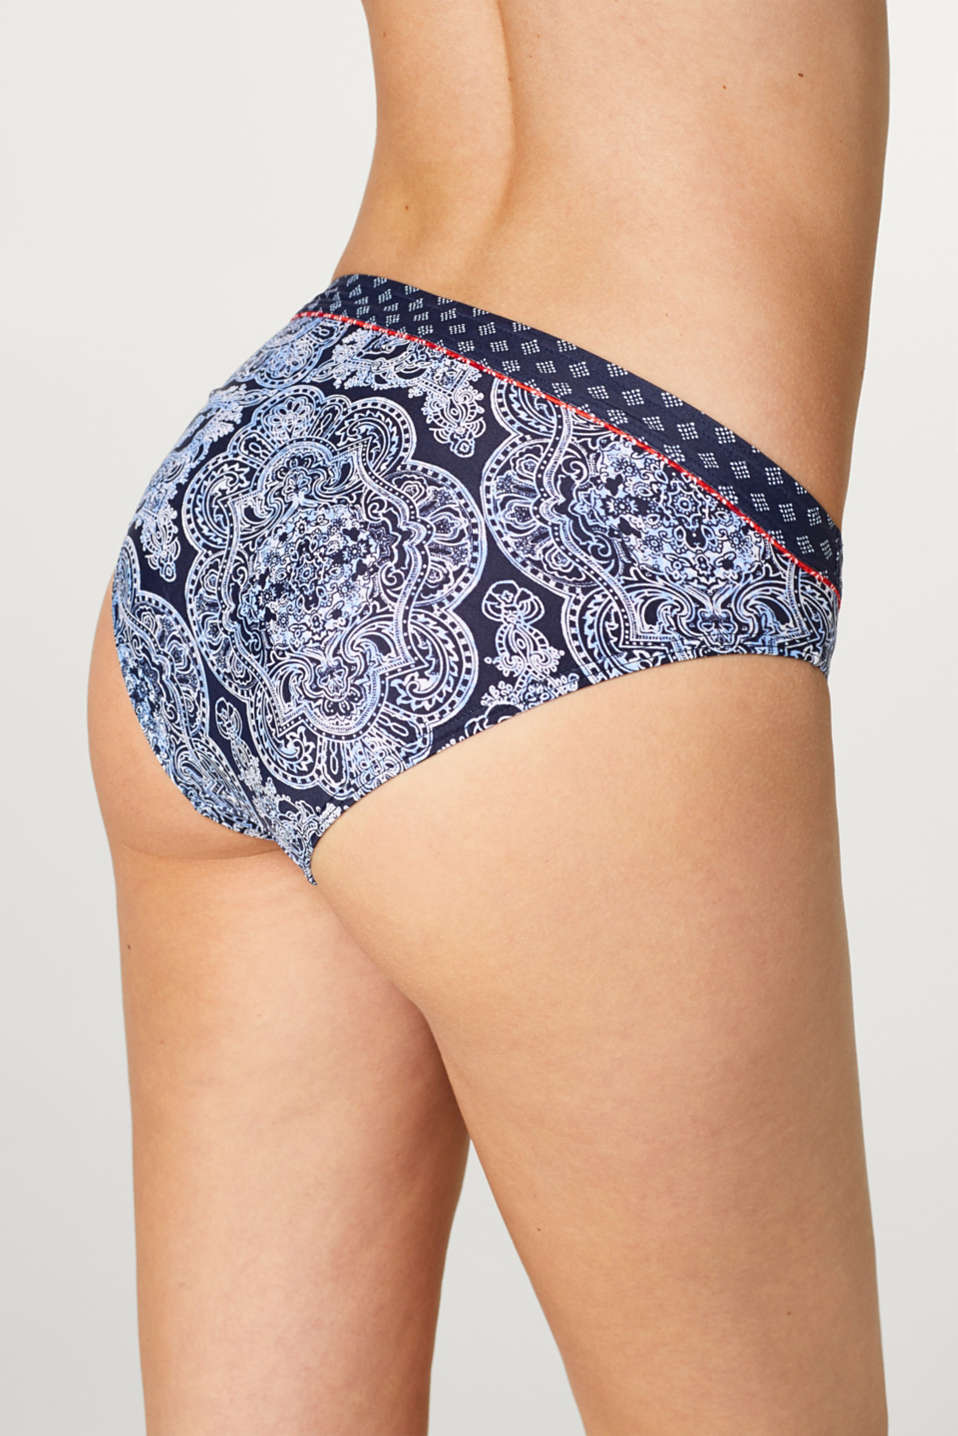 Mini briefs in a mixed pattern